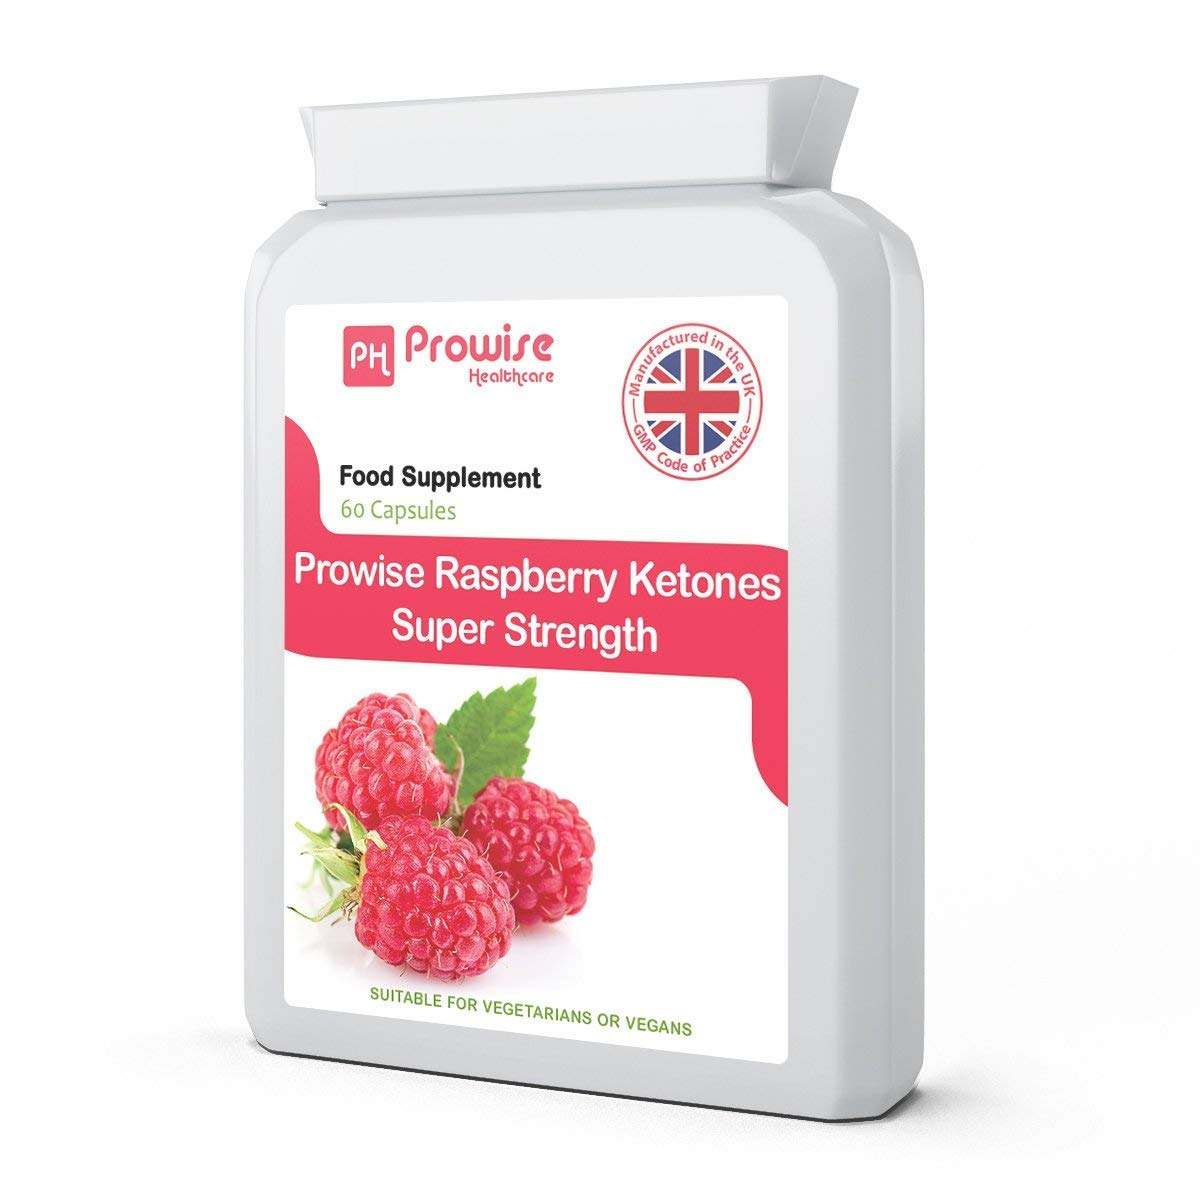 Prowise Raspberry Ketones Super Strength 600mg -60 Capsules (Pack of 1)